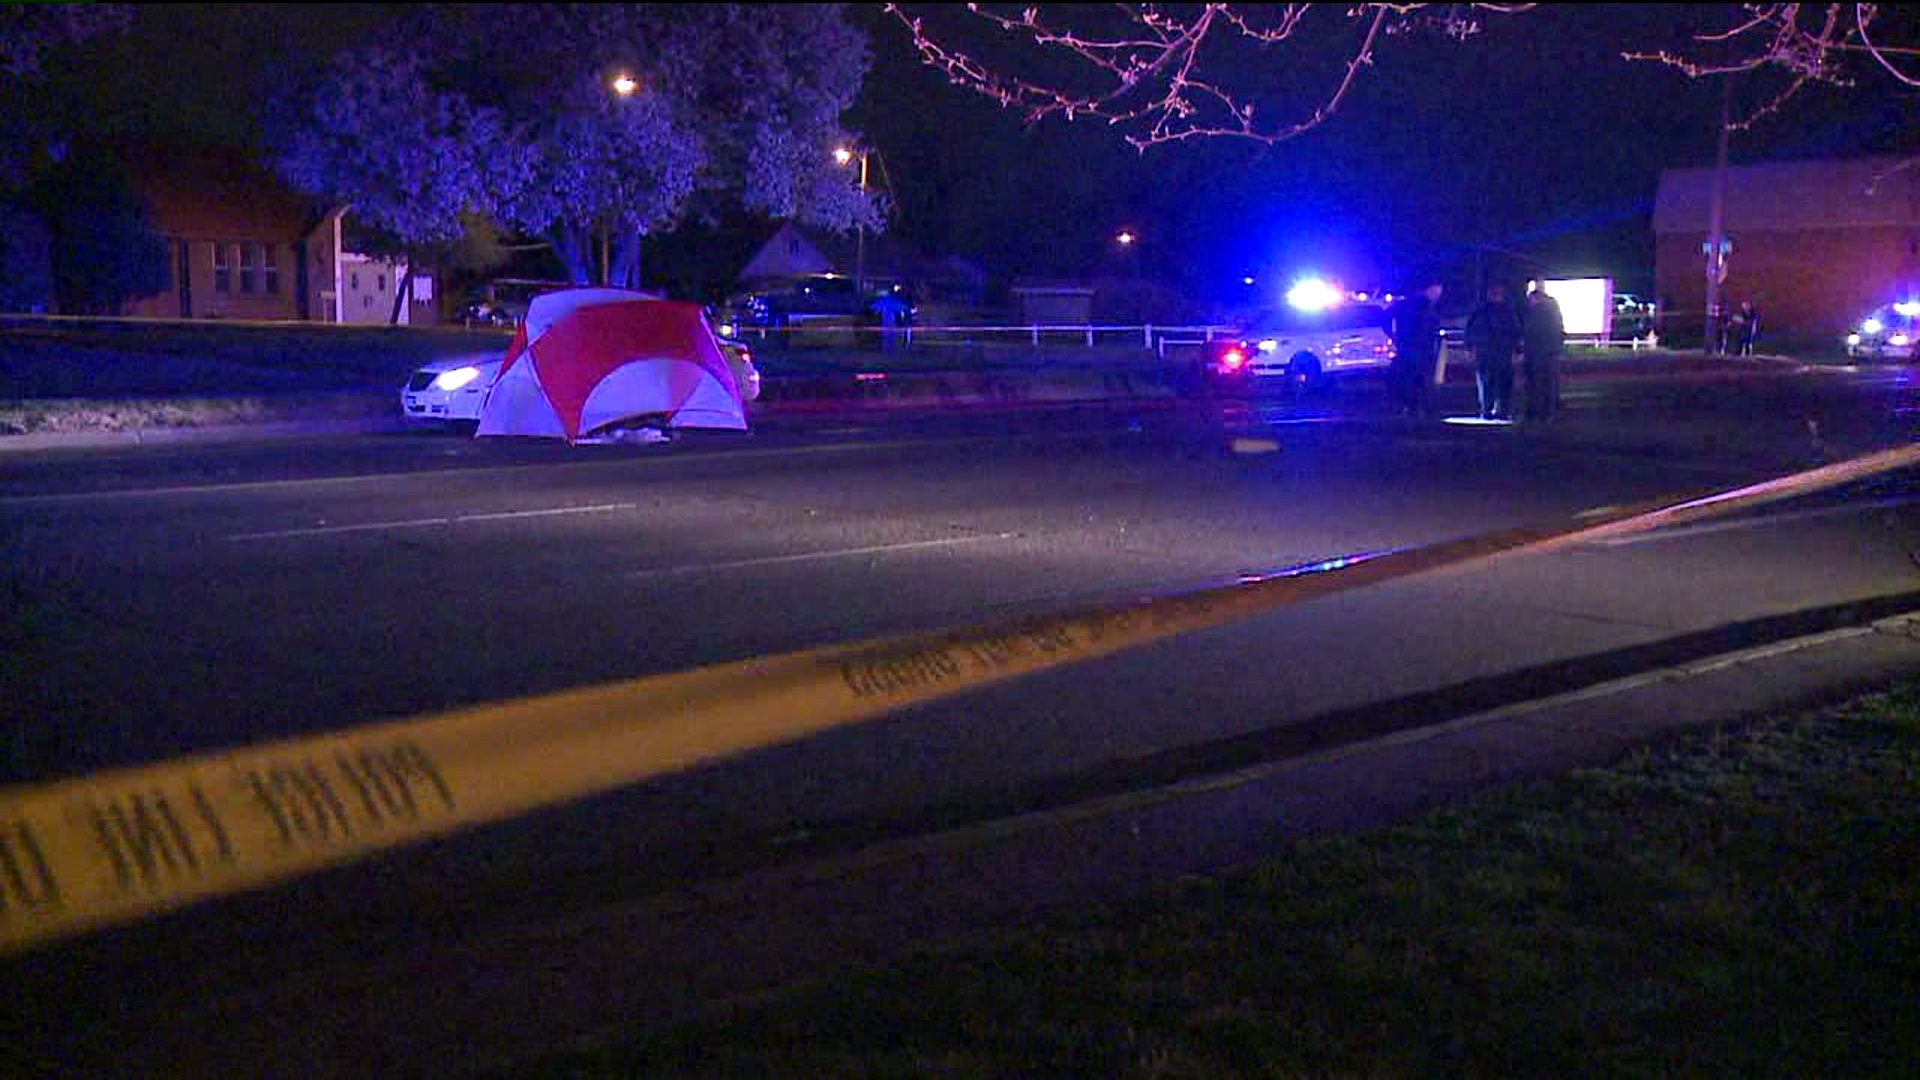 Police investigate hit-and-run on S. Federal Blvd. in Denver